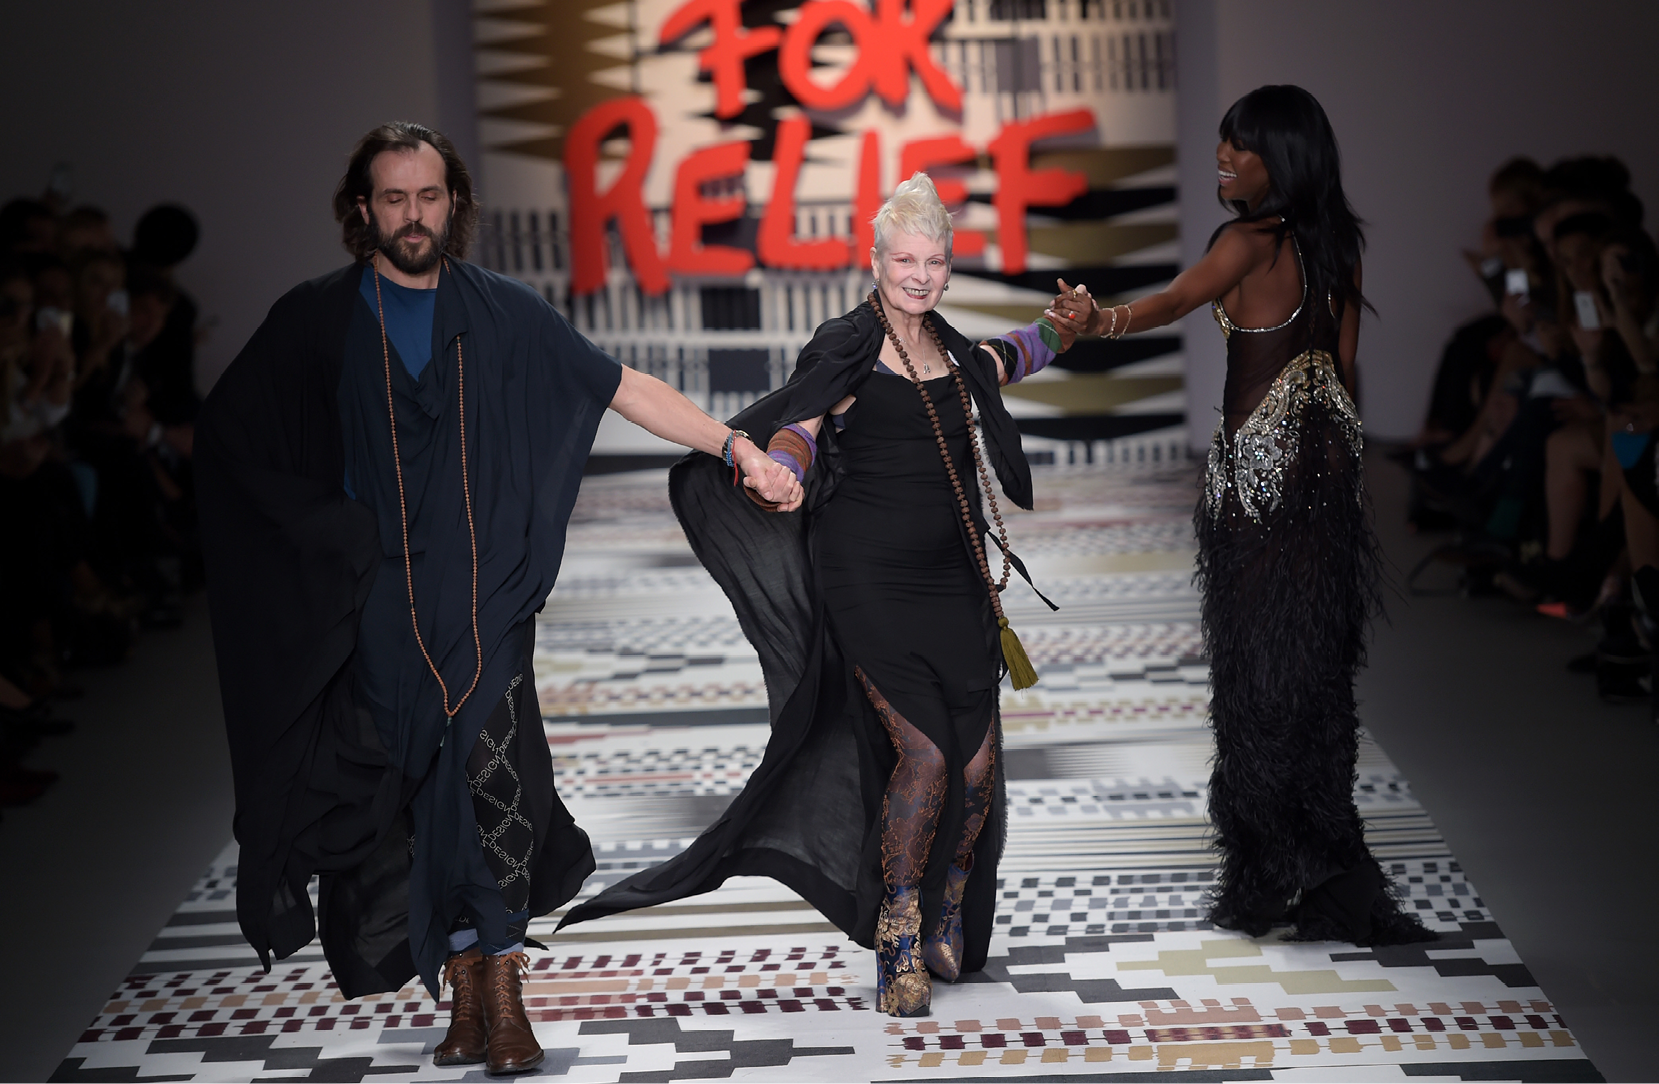 Vivienne Westwood and Andreas Kronthaler and Naomi Campbell walking the catwalk in the  Fashion For Relief charity fashion show at Somerset House, London, UK.  19/02/2015.